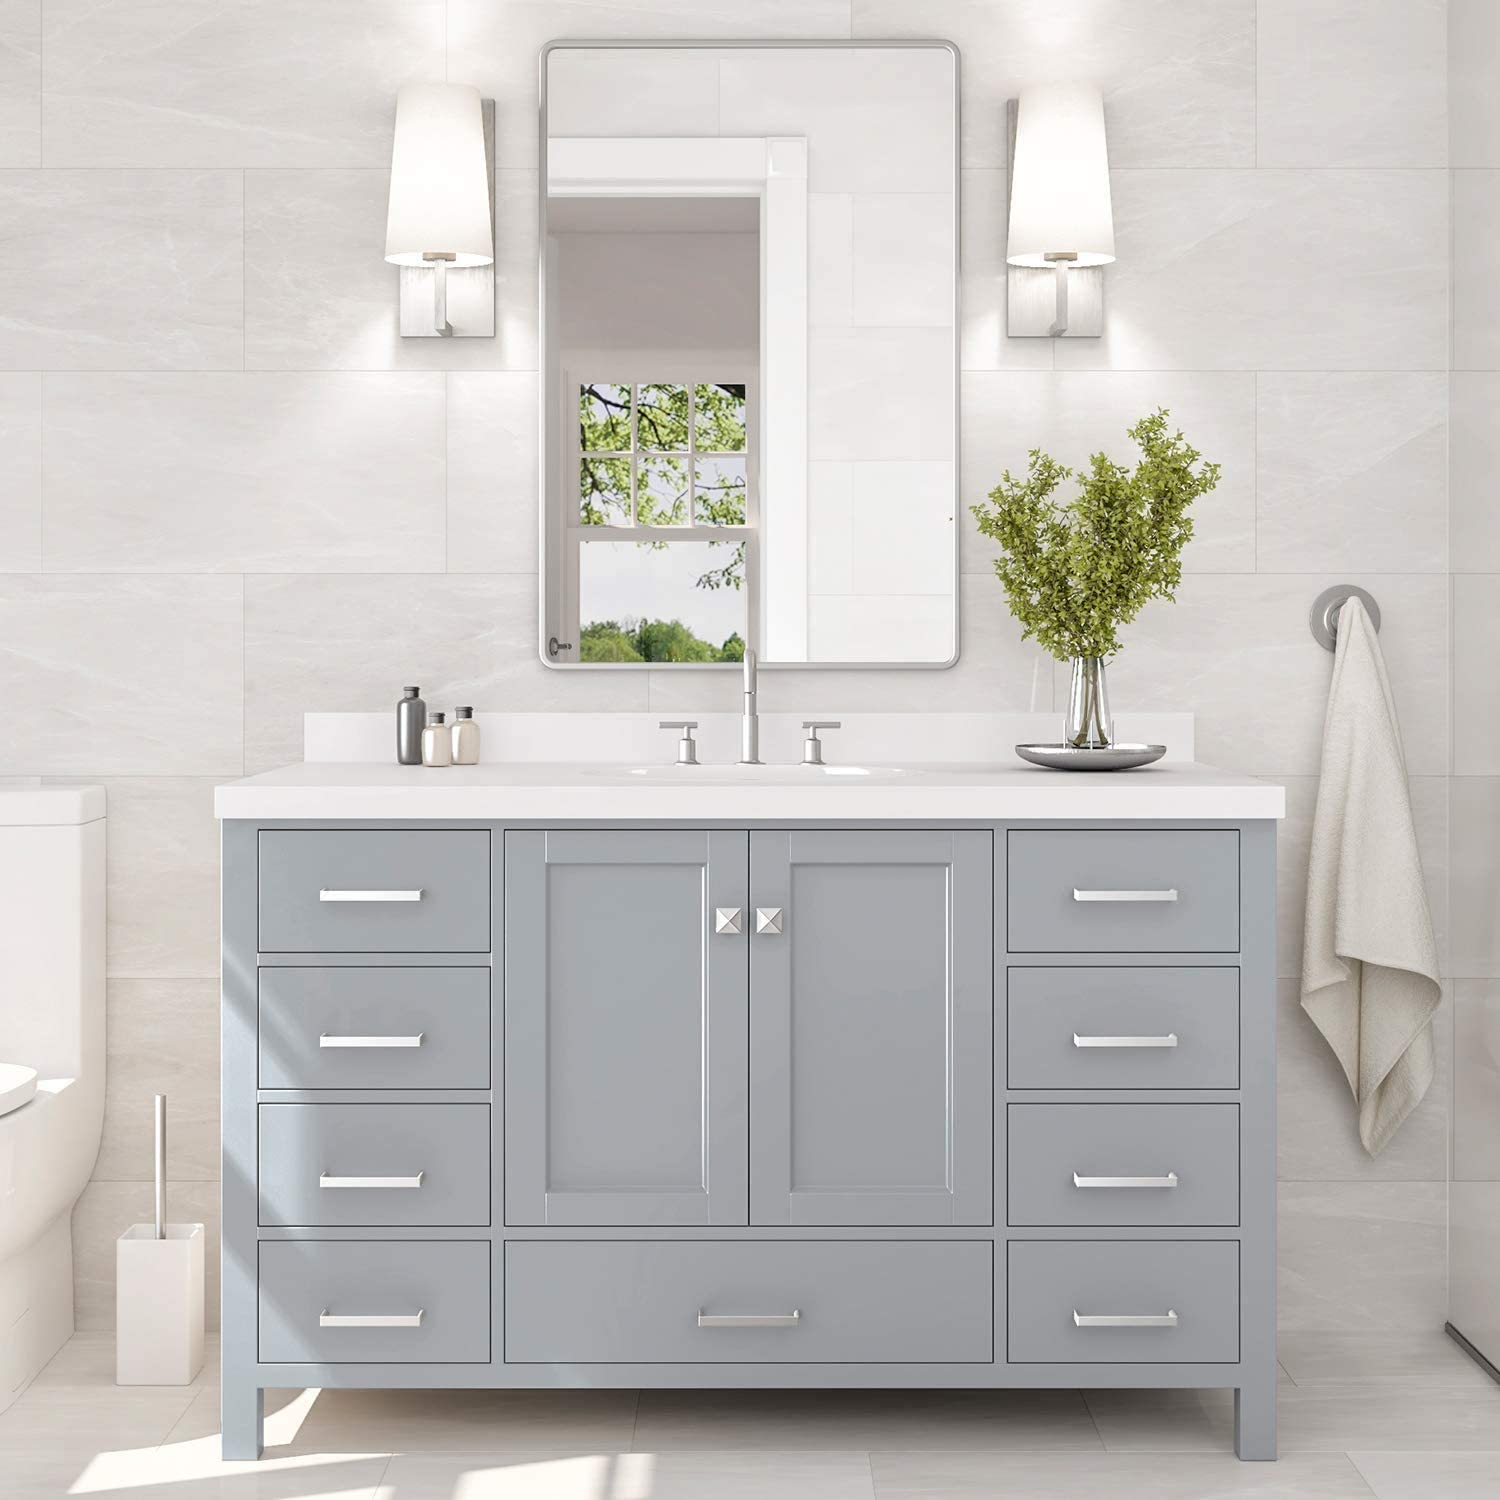 Amazon Com Ariel 55 Inch Bathroom Vanity In Grey With Pure White Quartz Countertop Rectangle Sink 2 Soft Closing Doors And 9 Full Extension Dovetail Drawers With Backsplash No Mirror Kitchen Dining